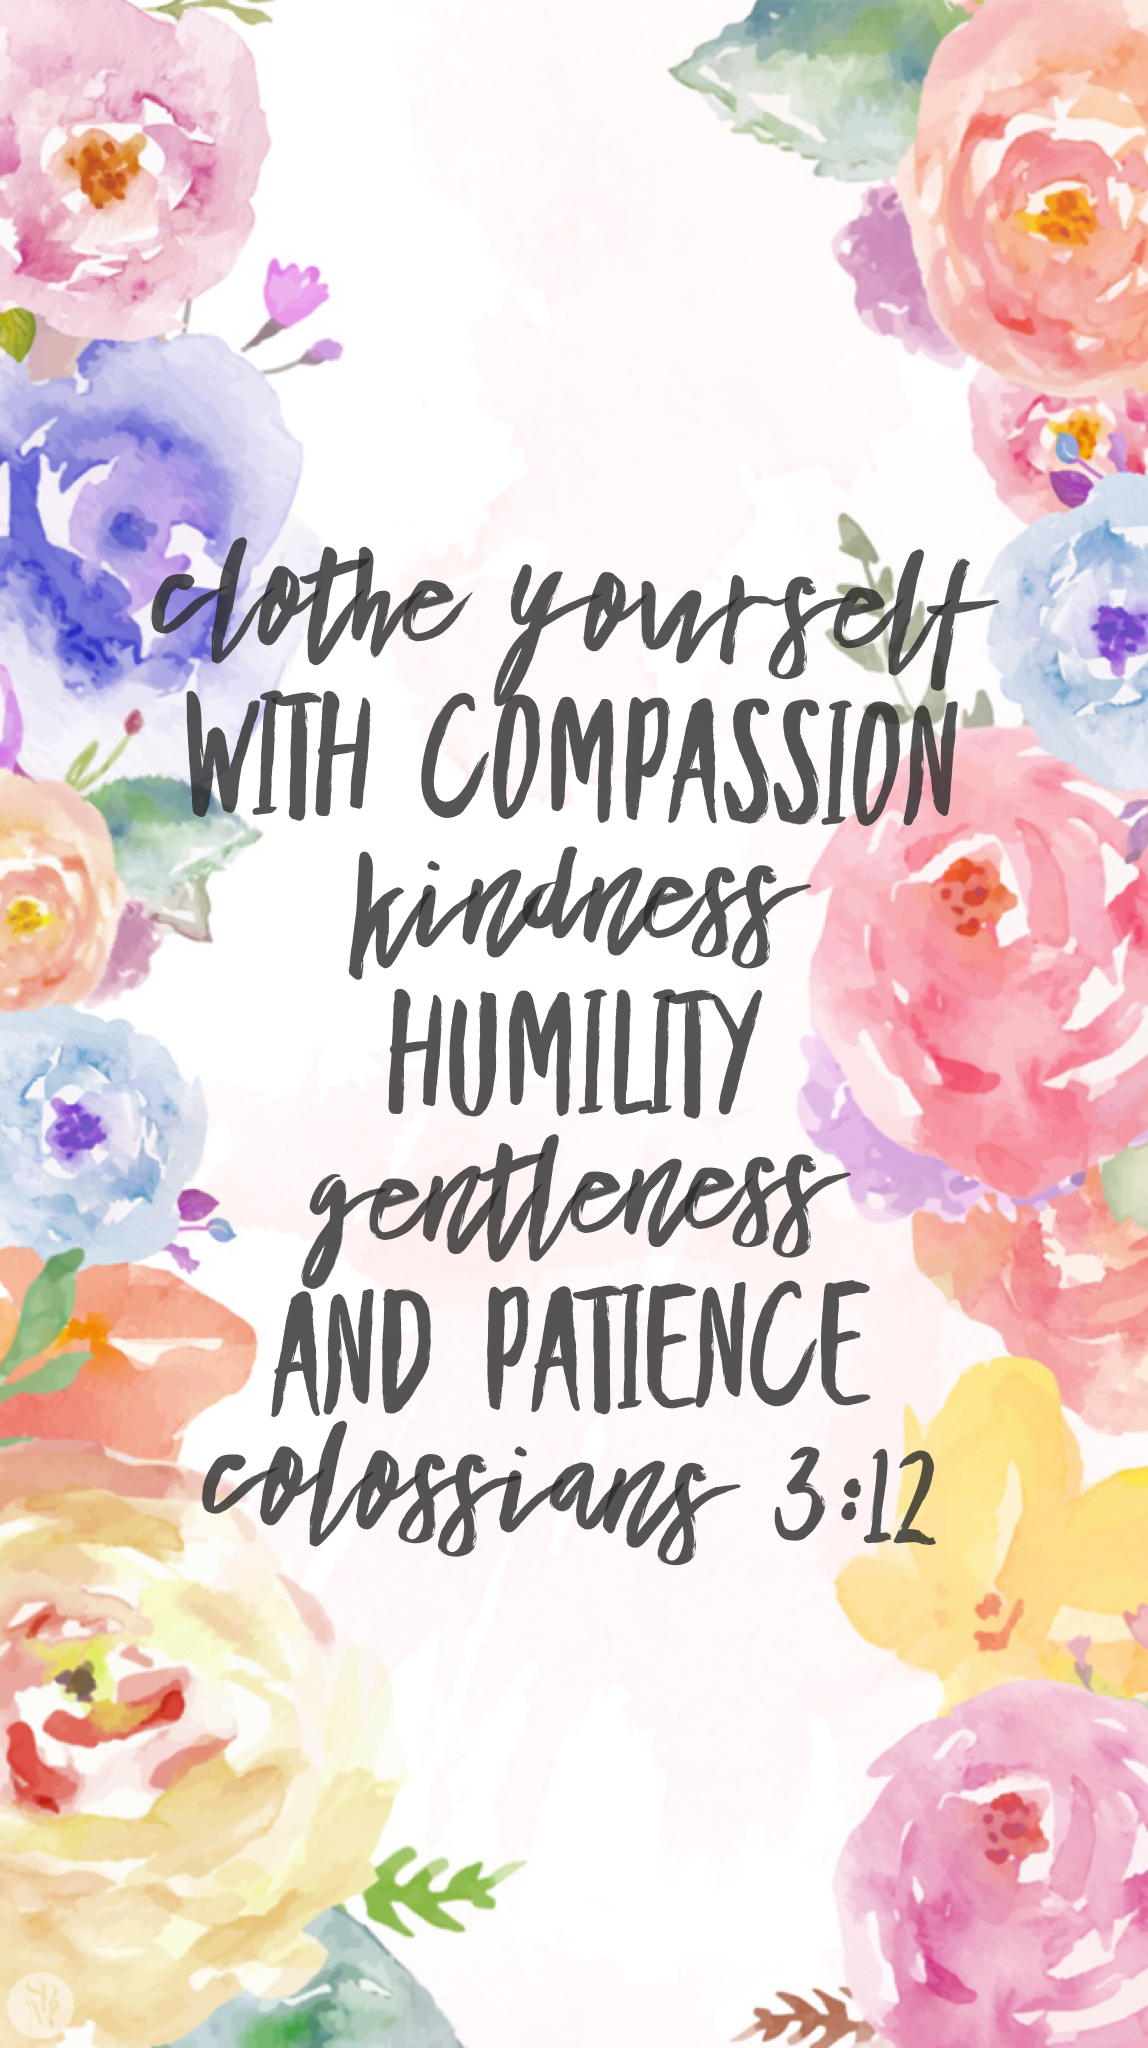 Clothe Yourself With Compassion Kindness Humility Gentleness And